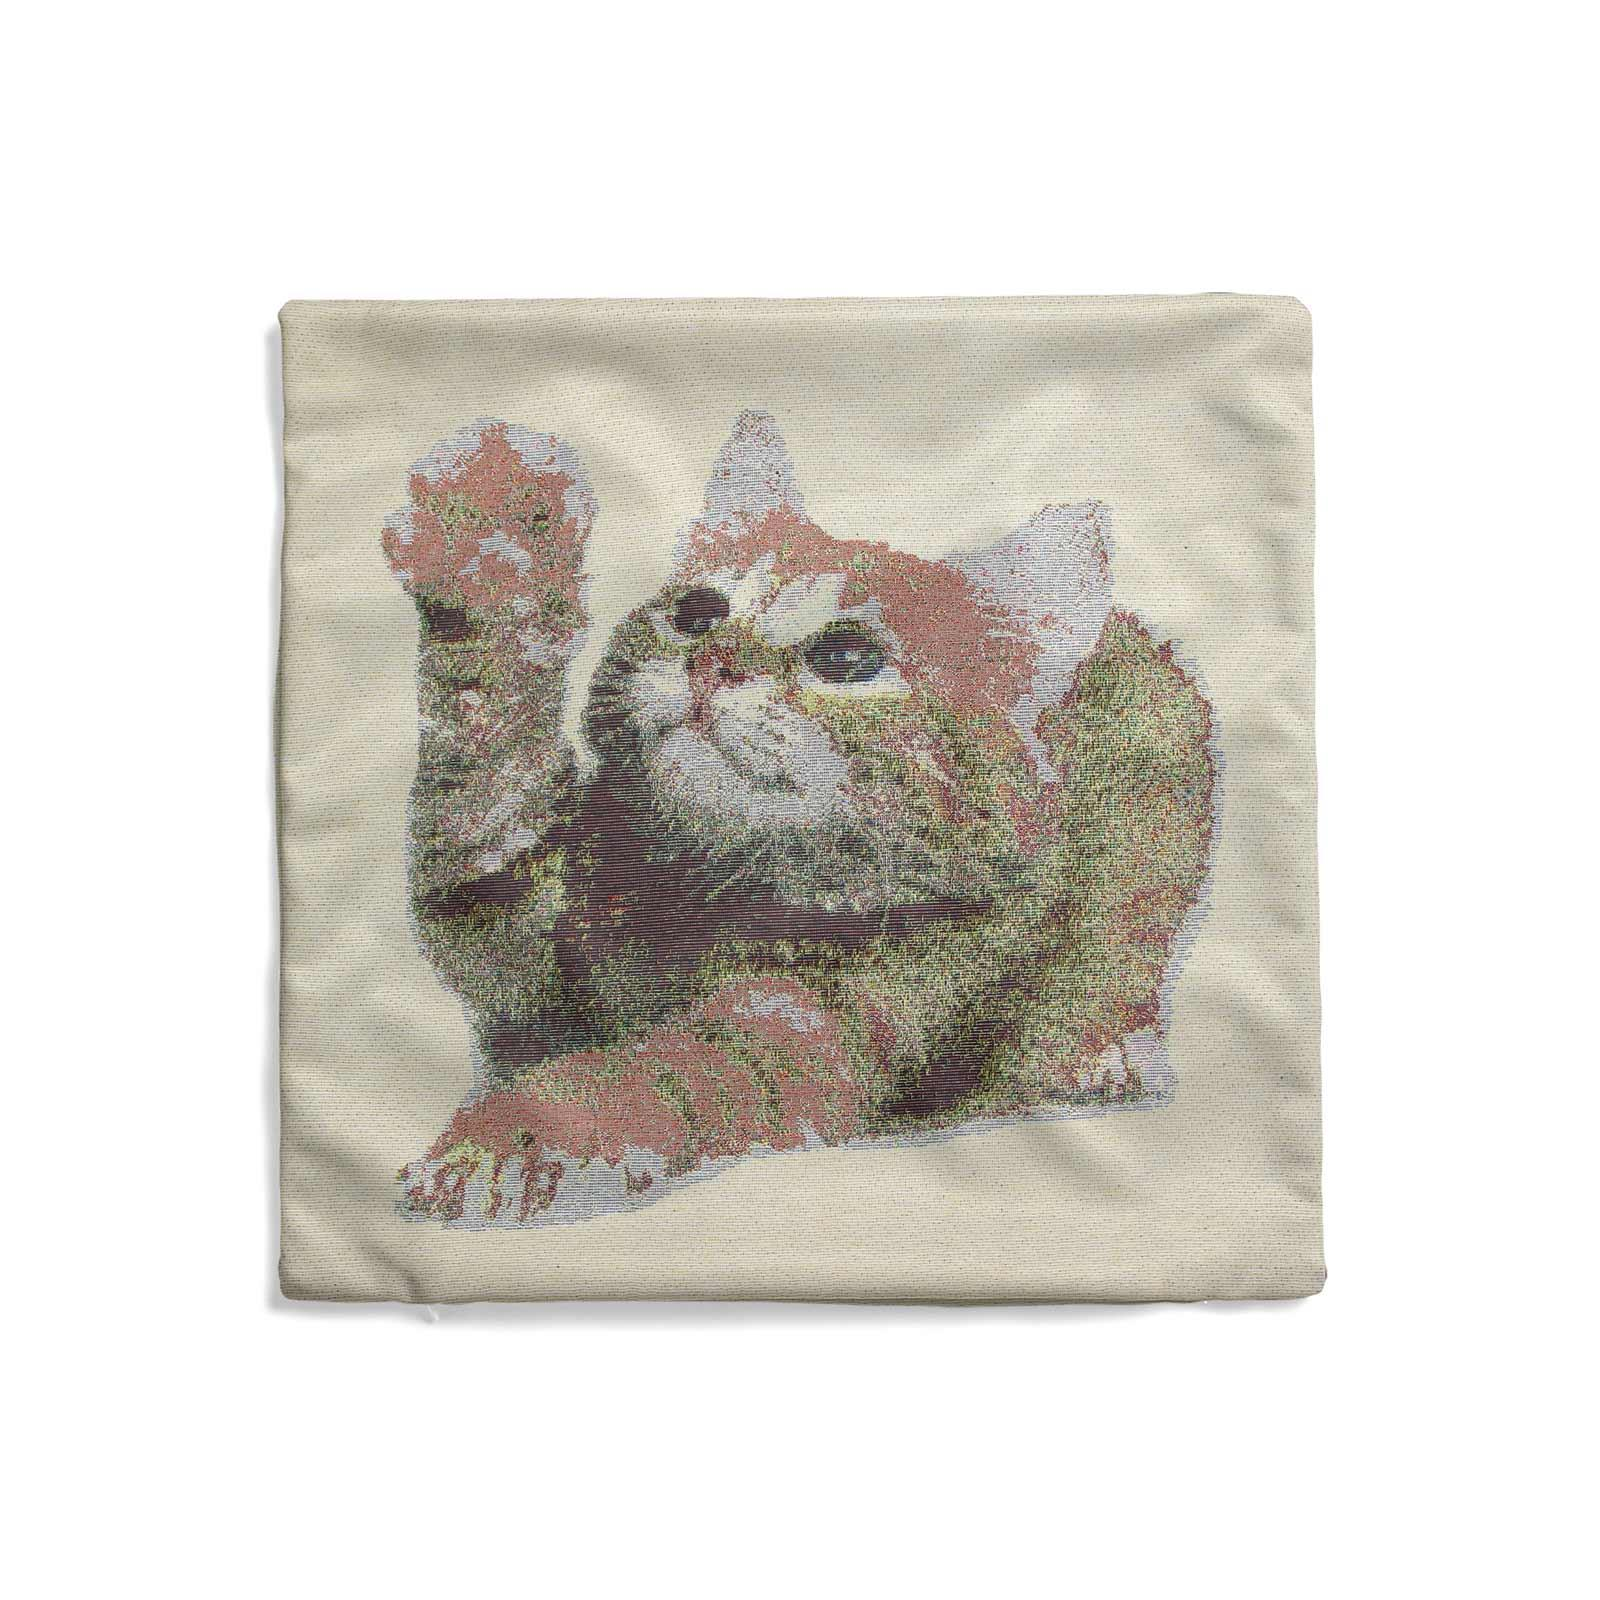 Tapestry-Cushion-Covers-Vintage-Pillow-Cover-Collection-18-034-45cm-Filled-Cushions thumbnail 93